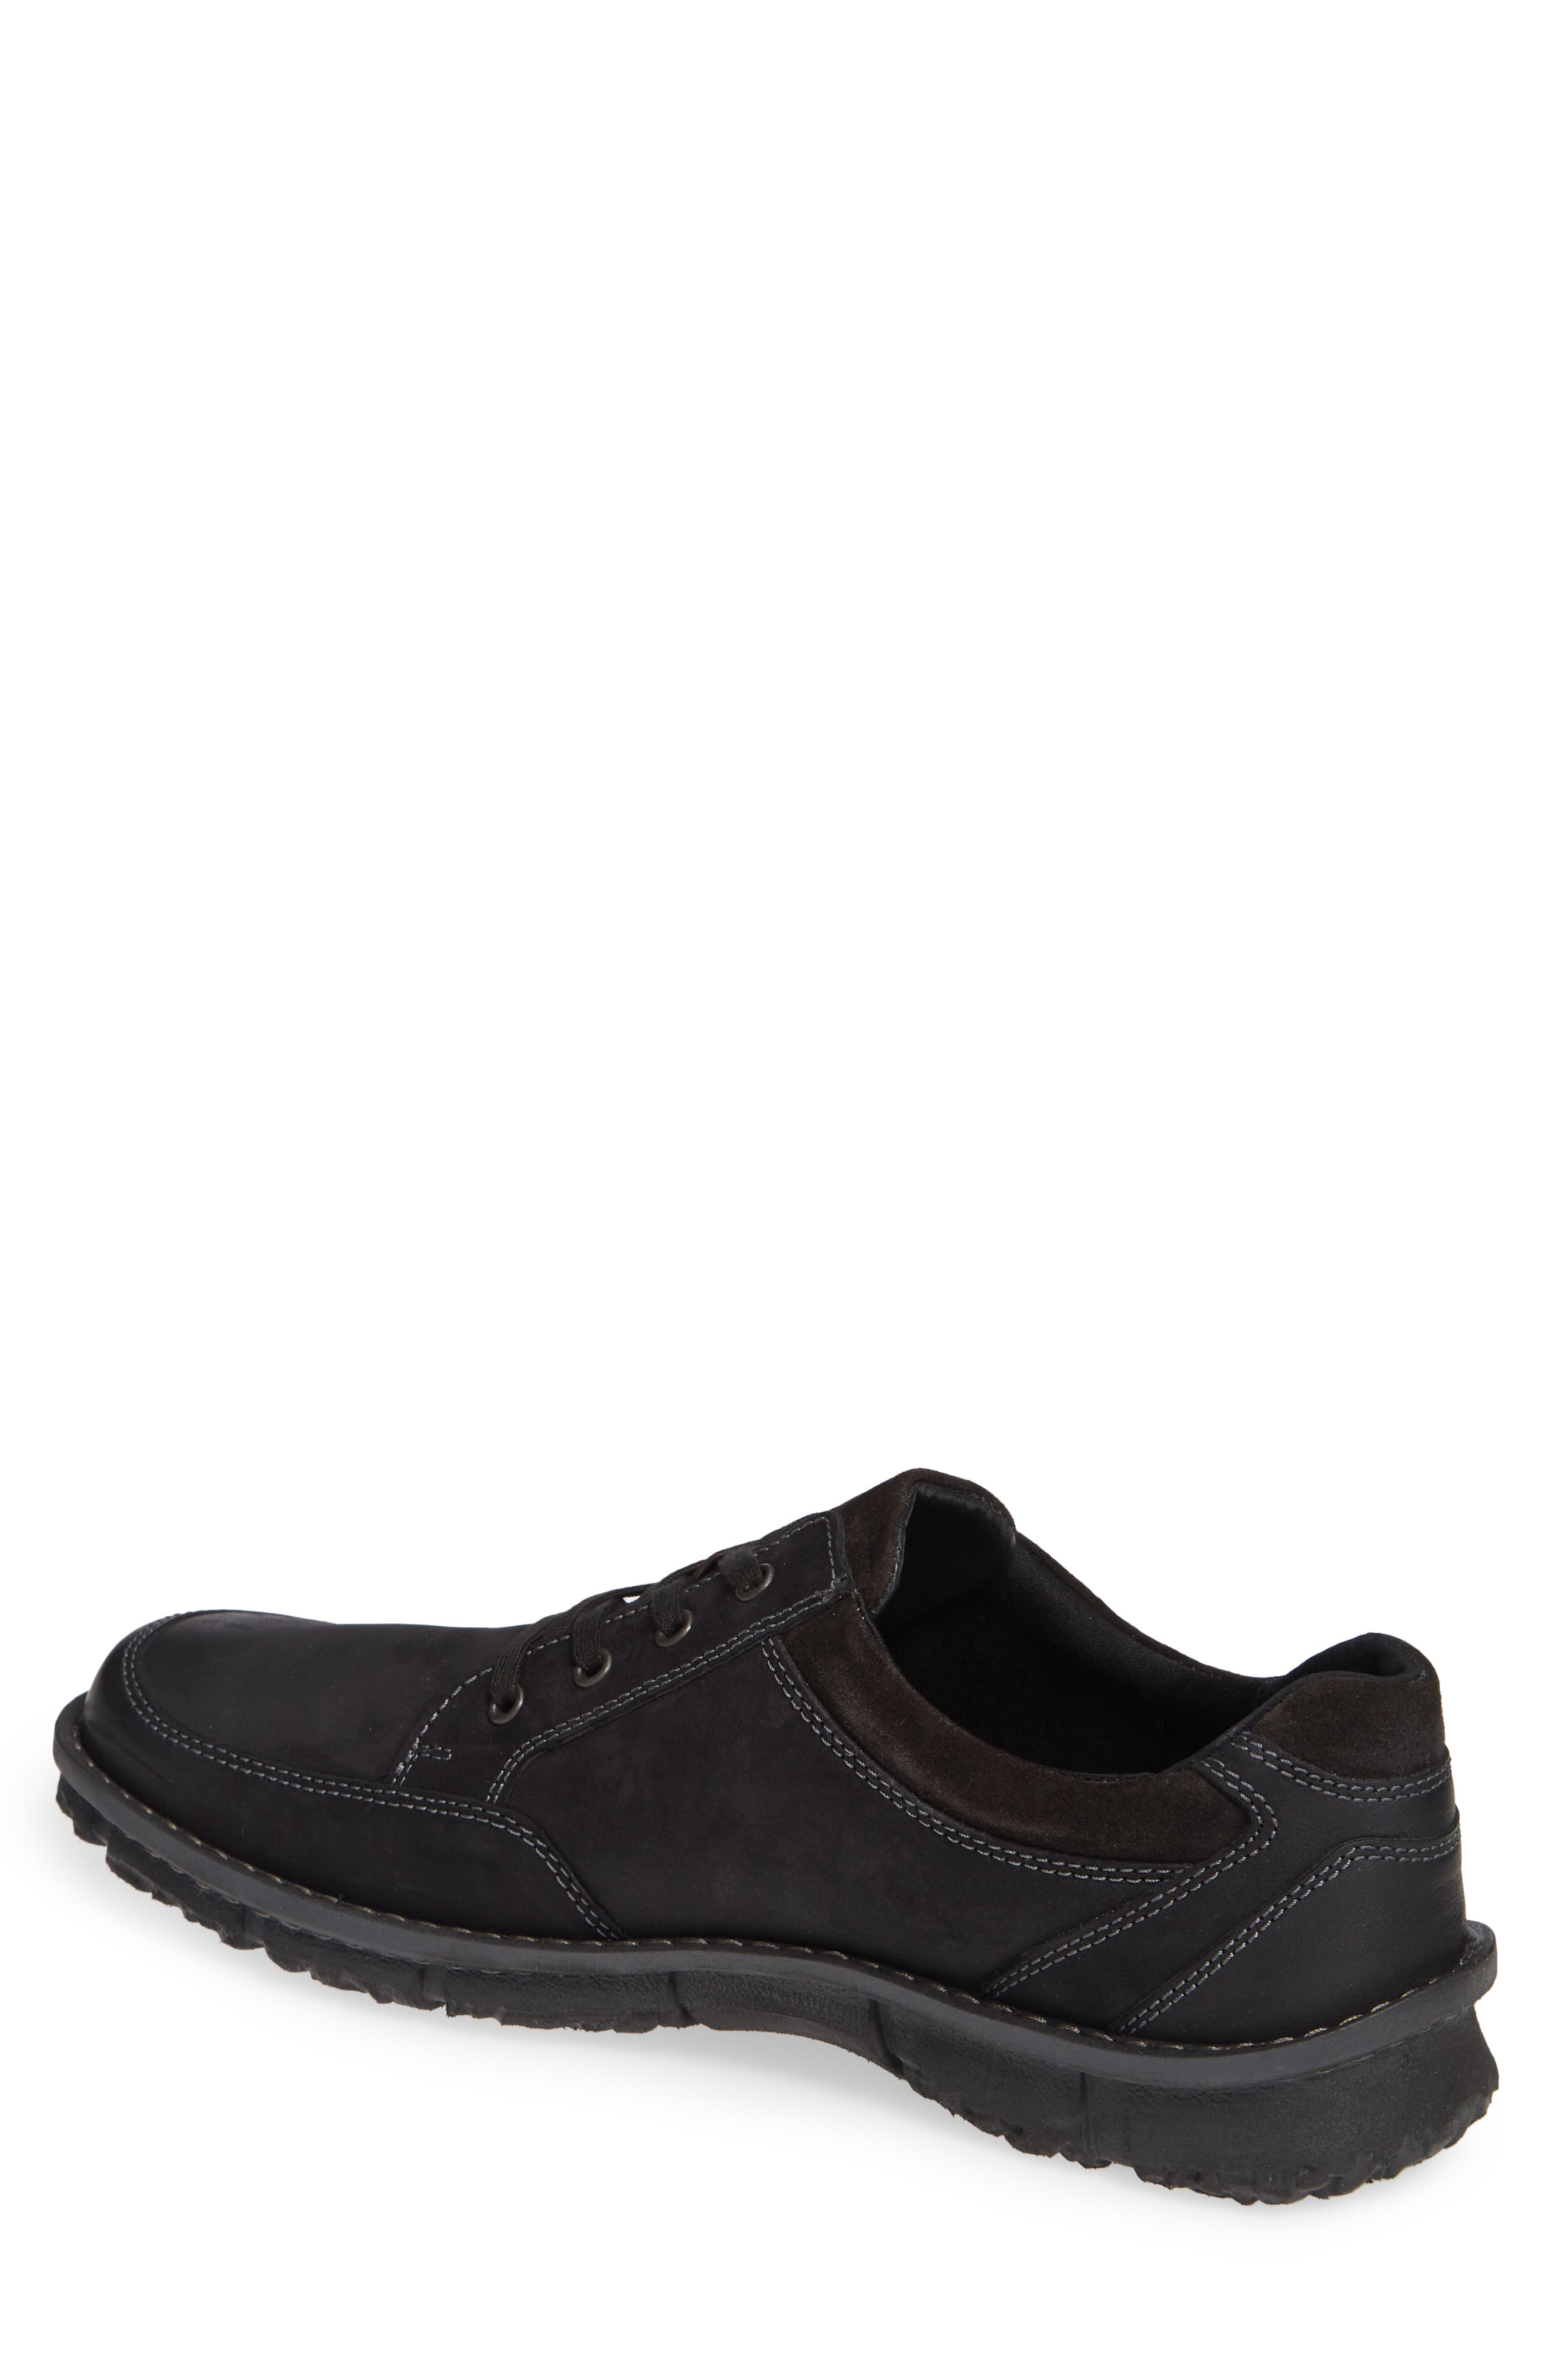 JOSEF SEIBEL,                             Willow 33 Sneaker,                             Alternate thumbnail 2, color,                             BLACK LEATHER